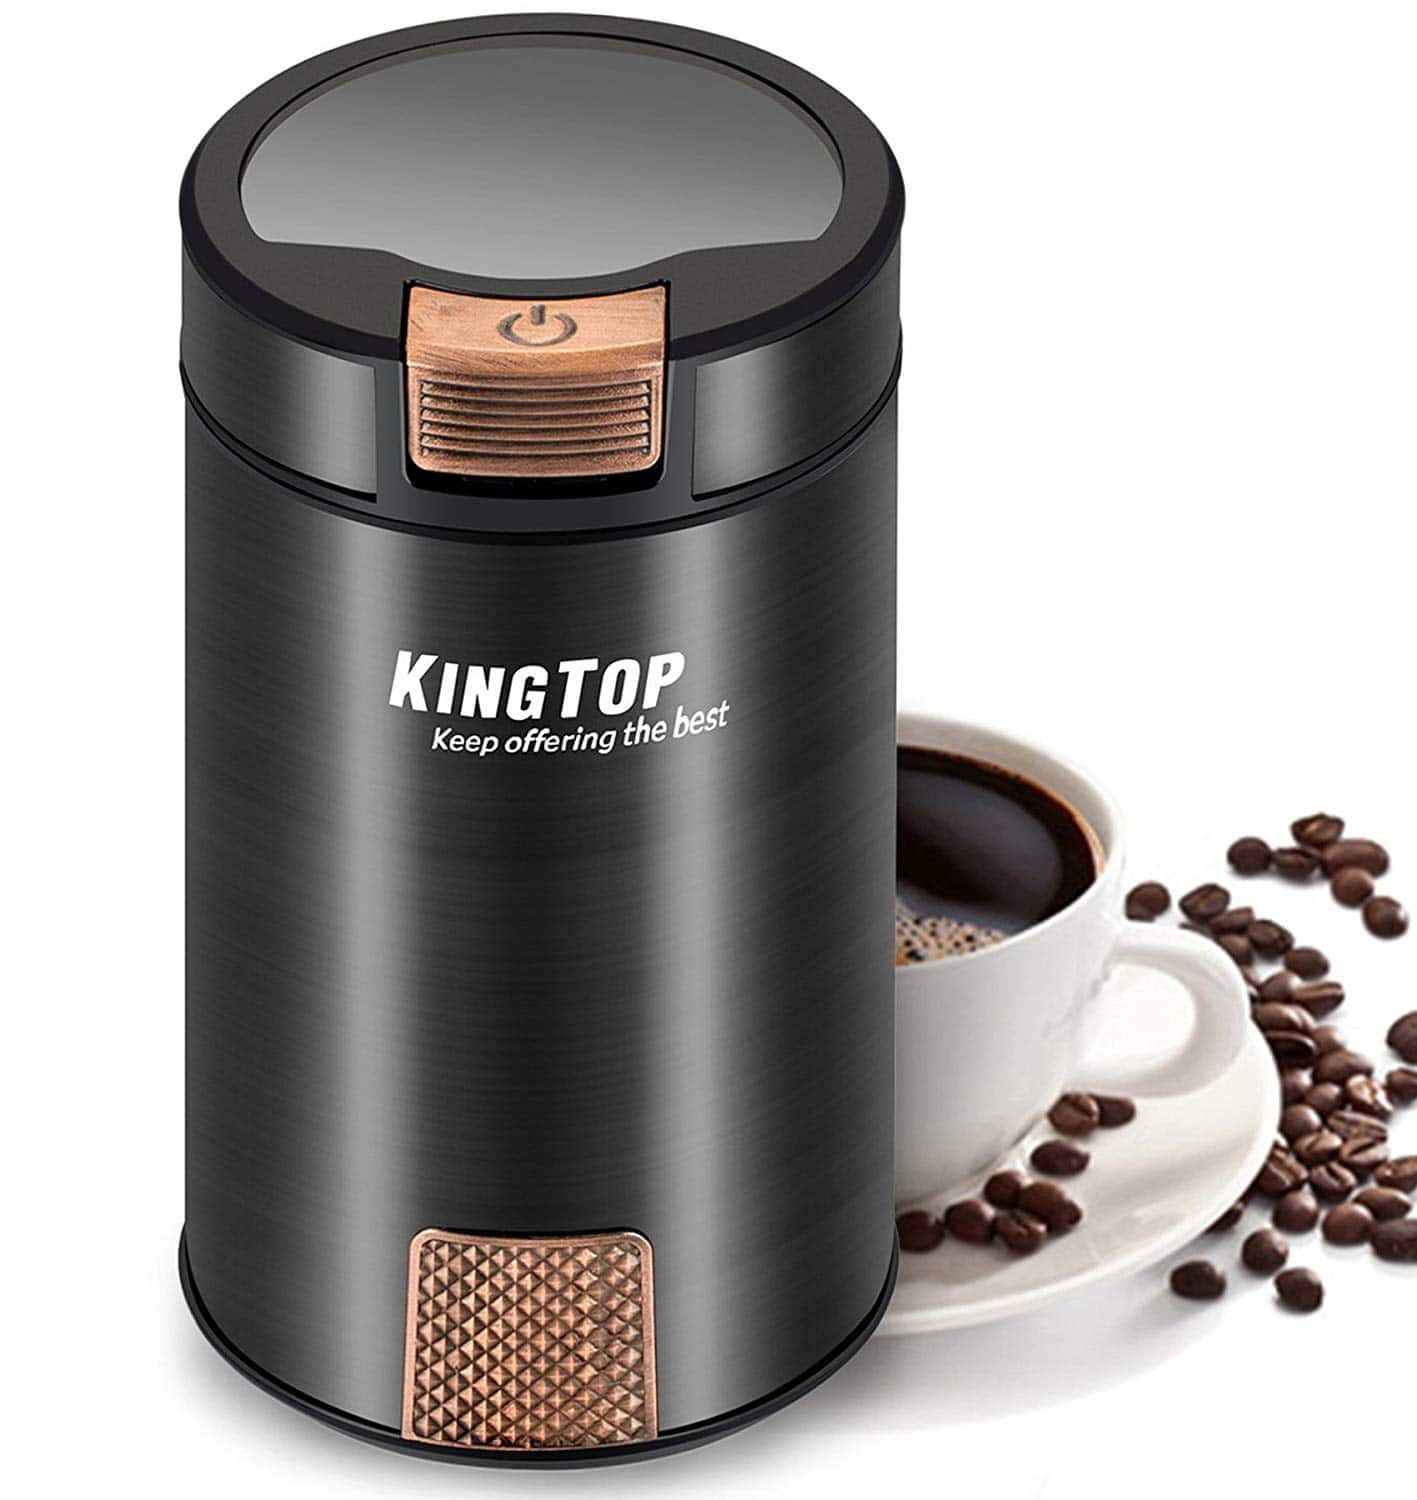 200W KINGTOP Fresh Electric Coffee Bean Grinder at $19.80 AC+Free Shipping